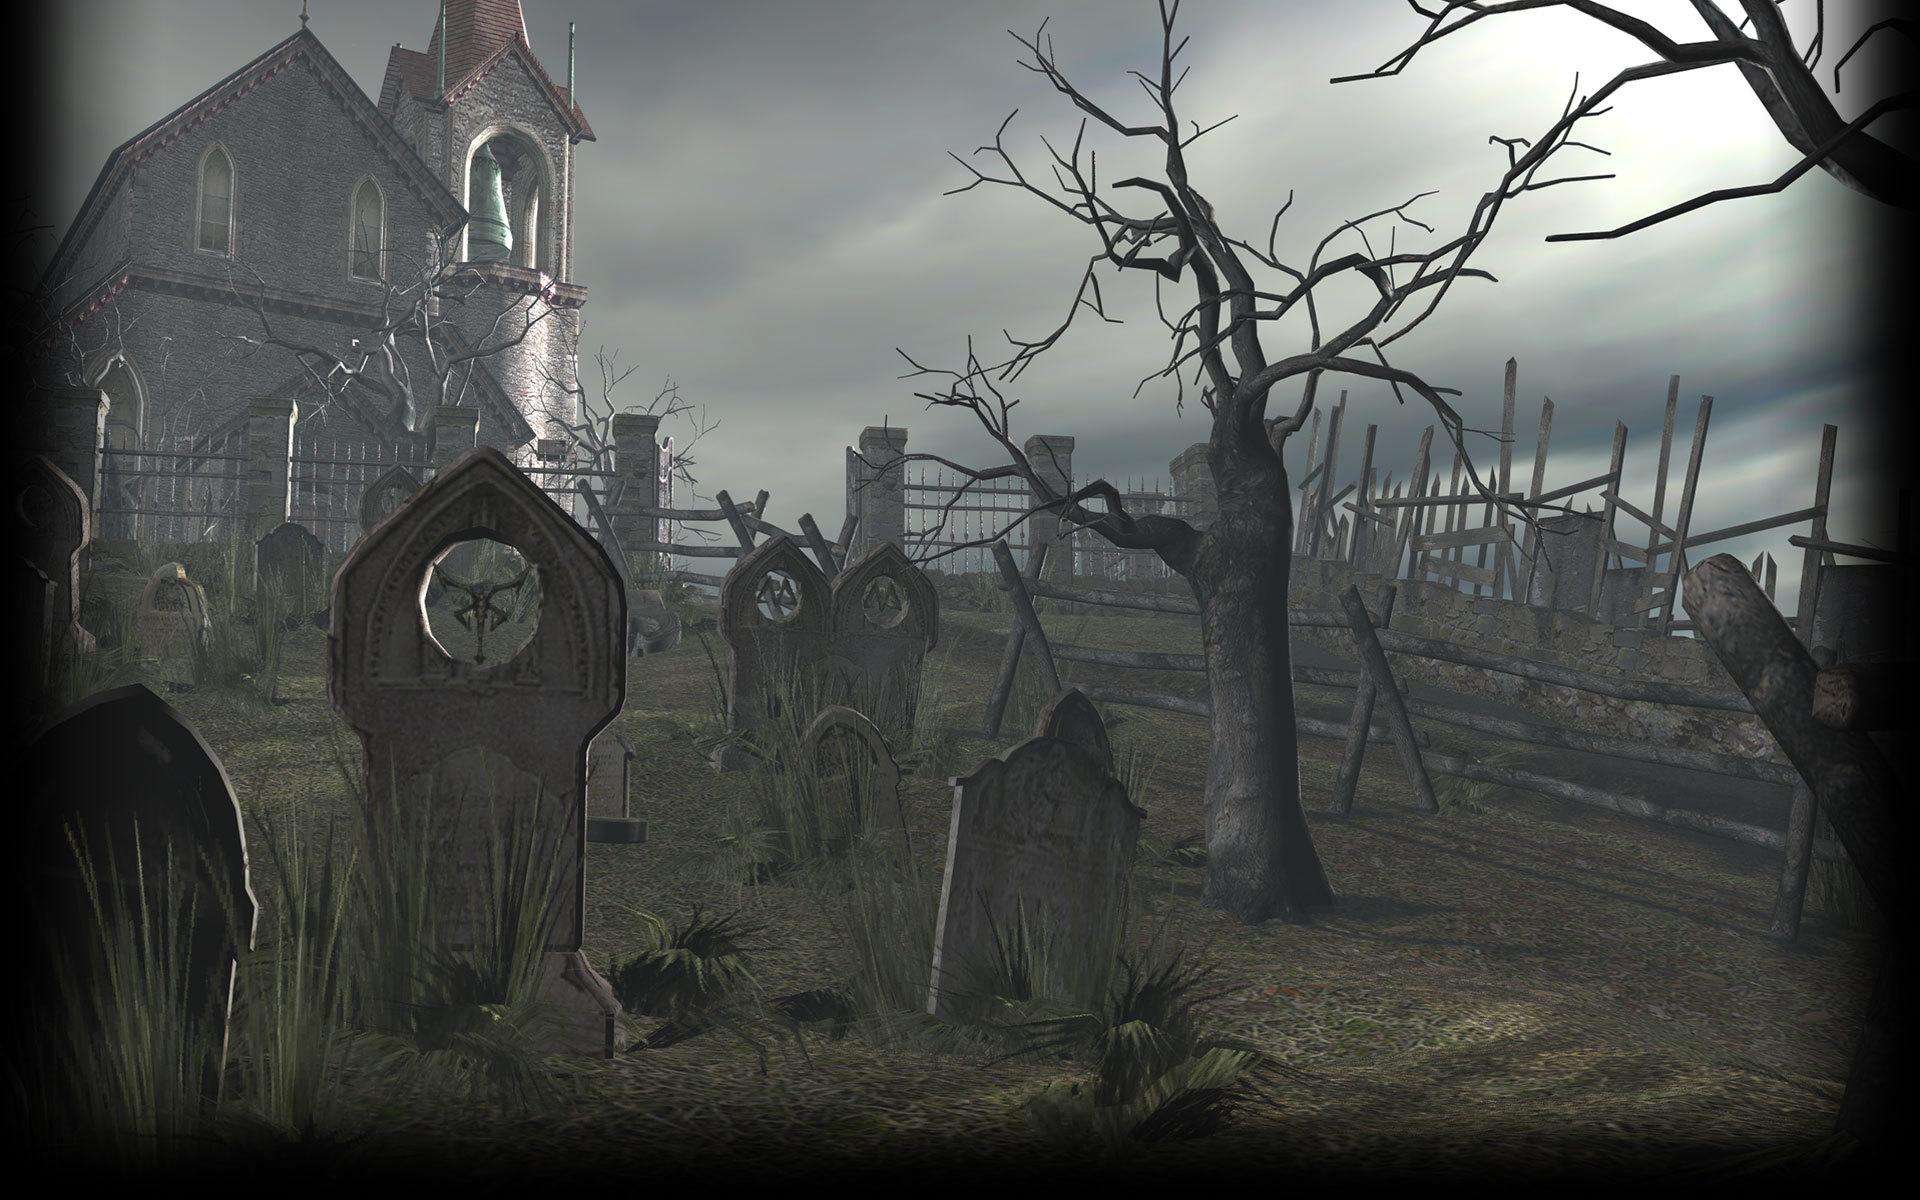 Buy RE4 Cemetery from Steam Payment from PayPal Webmoney 1920x1200